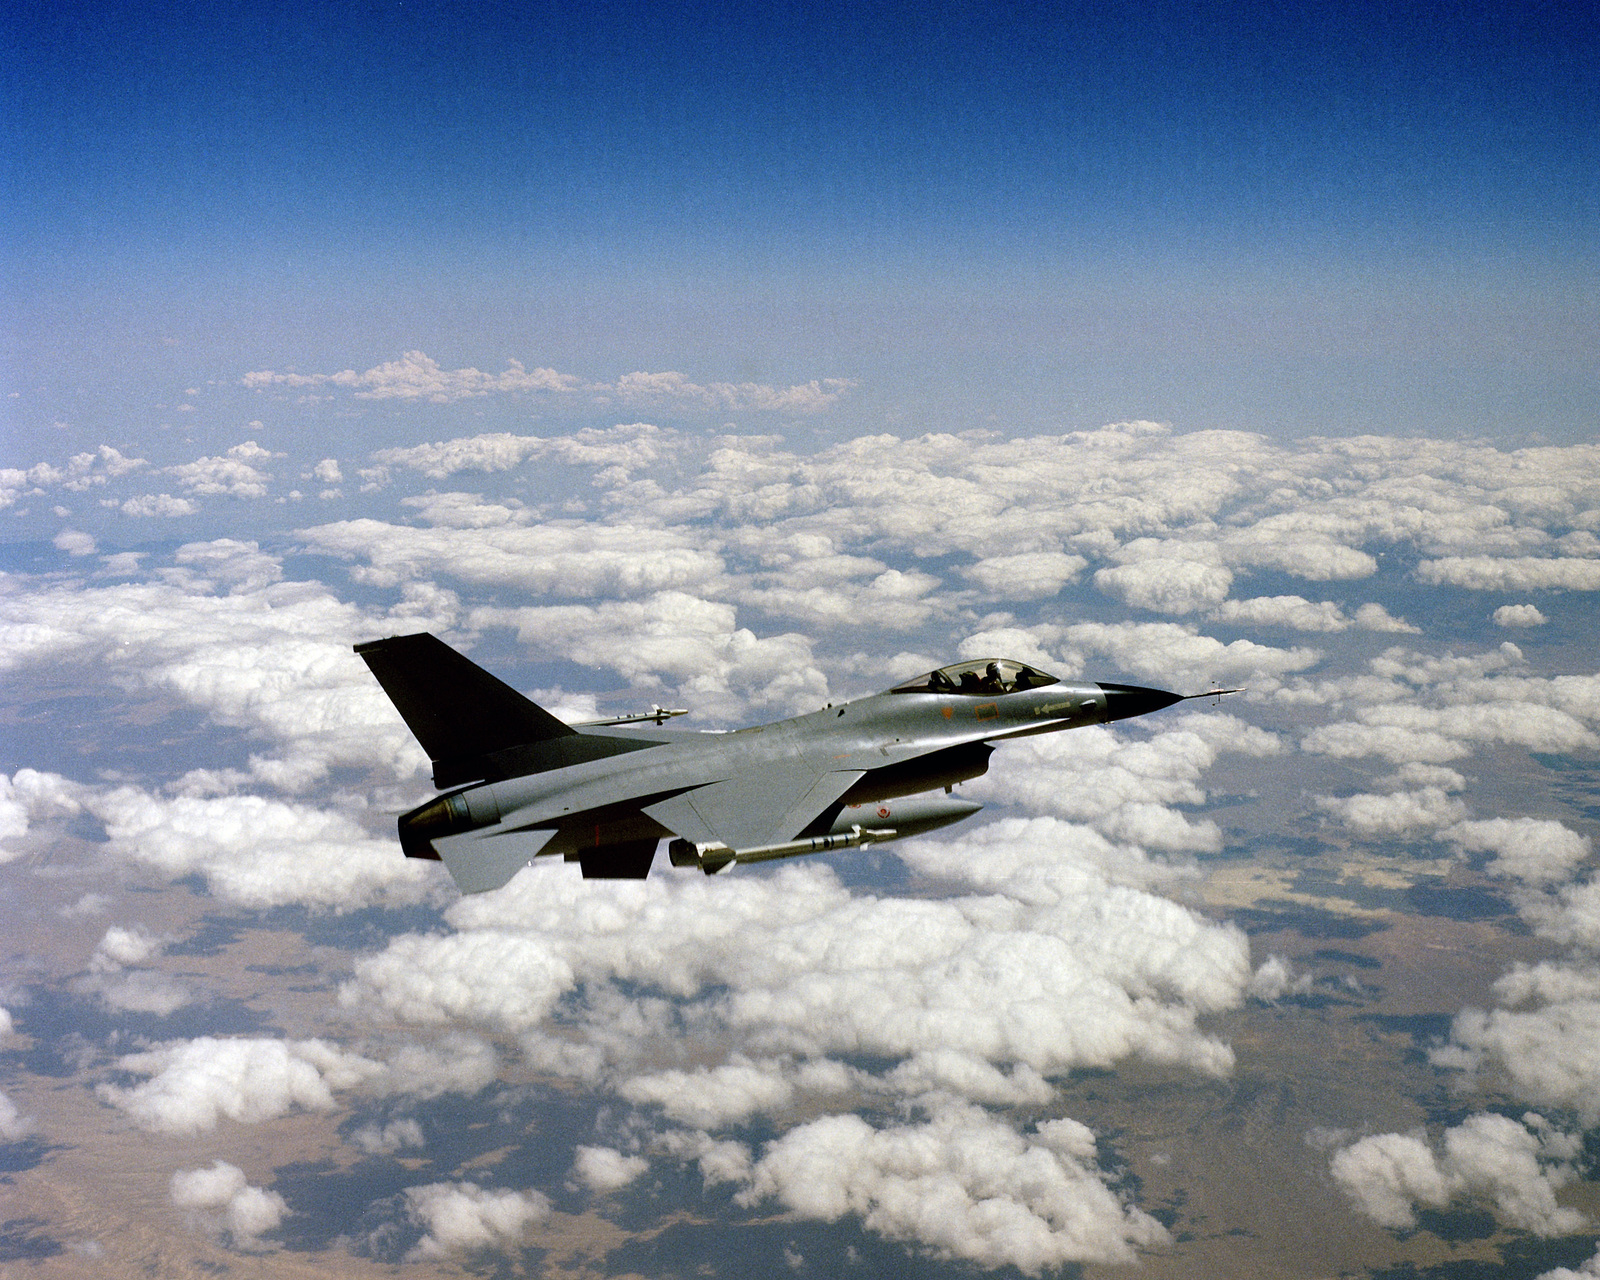 An air to air right side view of a YF-16 Fighting Falcon aircraft armed with AIM-9 Sidewinder missiles on the wing tips